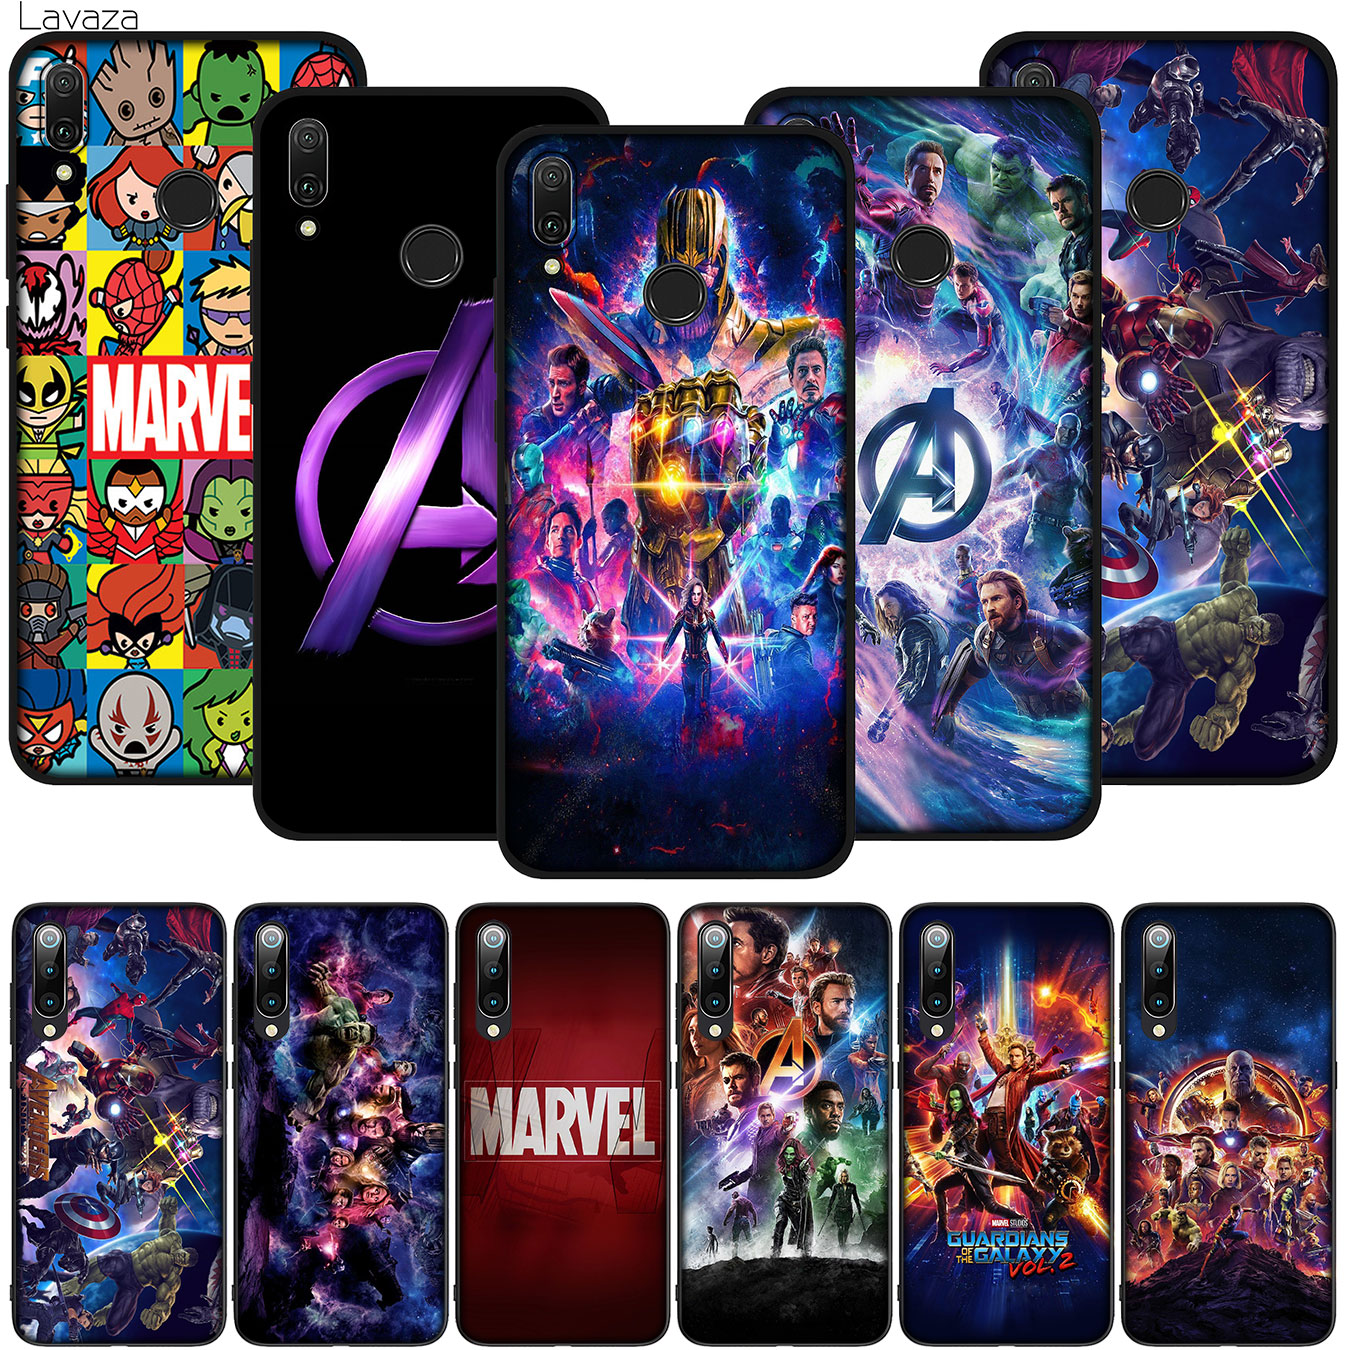 Avengers Endgame Superhero Captain America Soft Silicone Phone Case for Xiaomi Redmi Note 8 8A 7 7A 6 6A 5 5A S2 GO K30 K20 Pro image